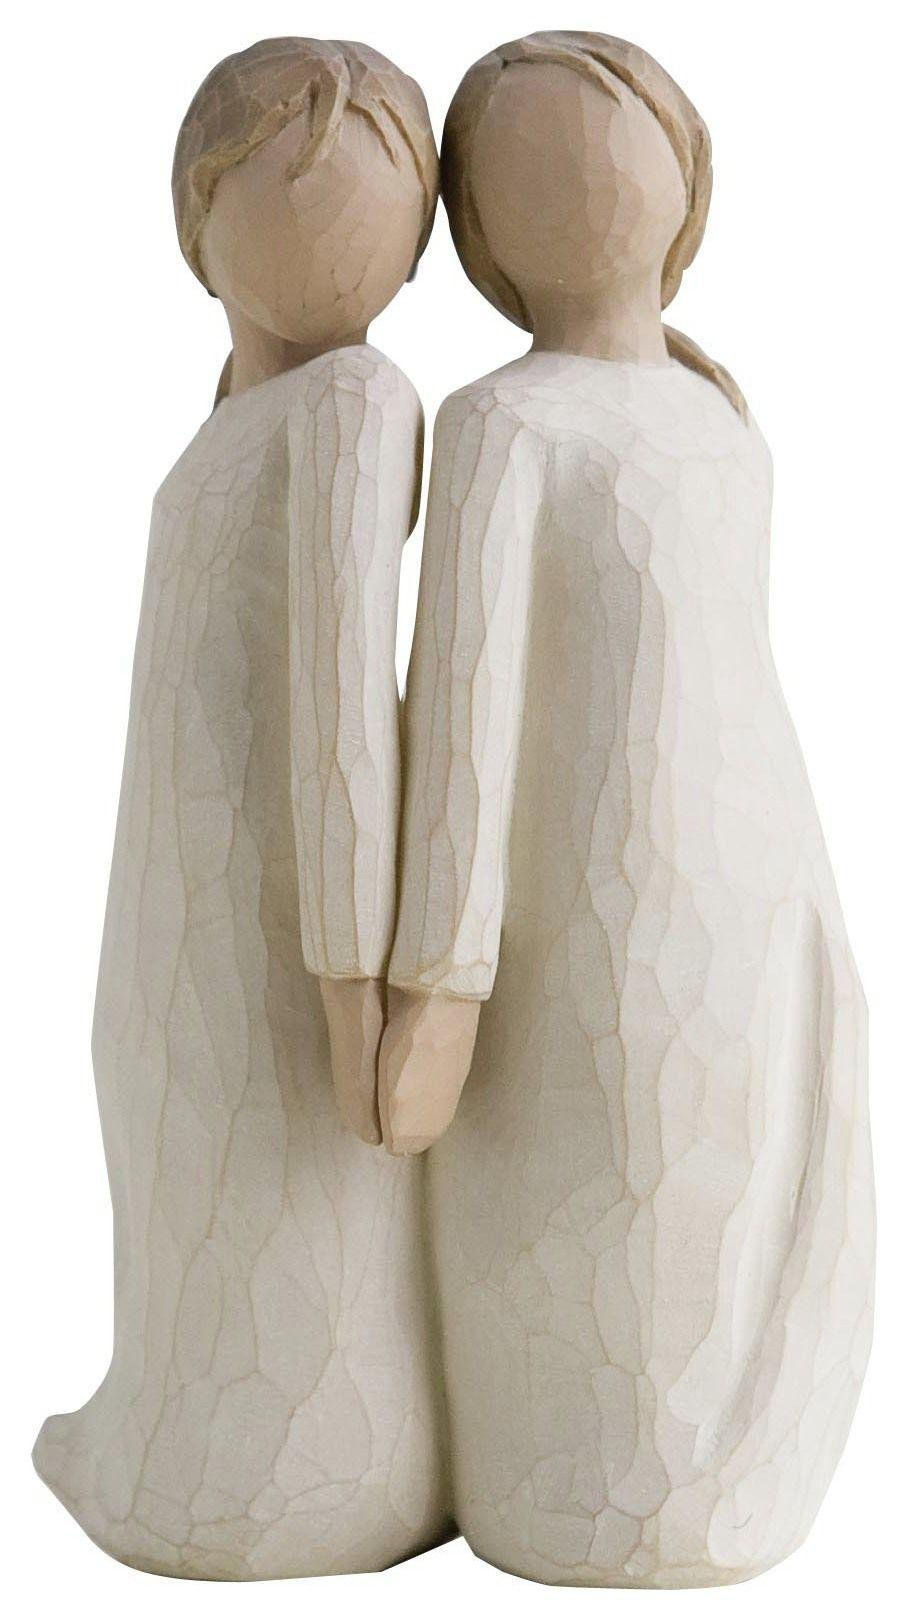 Willow Tree - Two Alike - Figurine lowest price